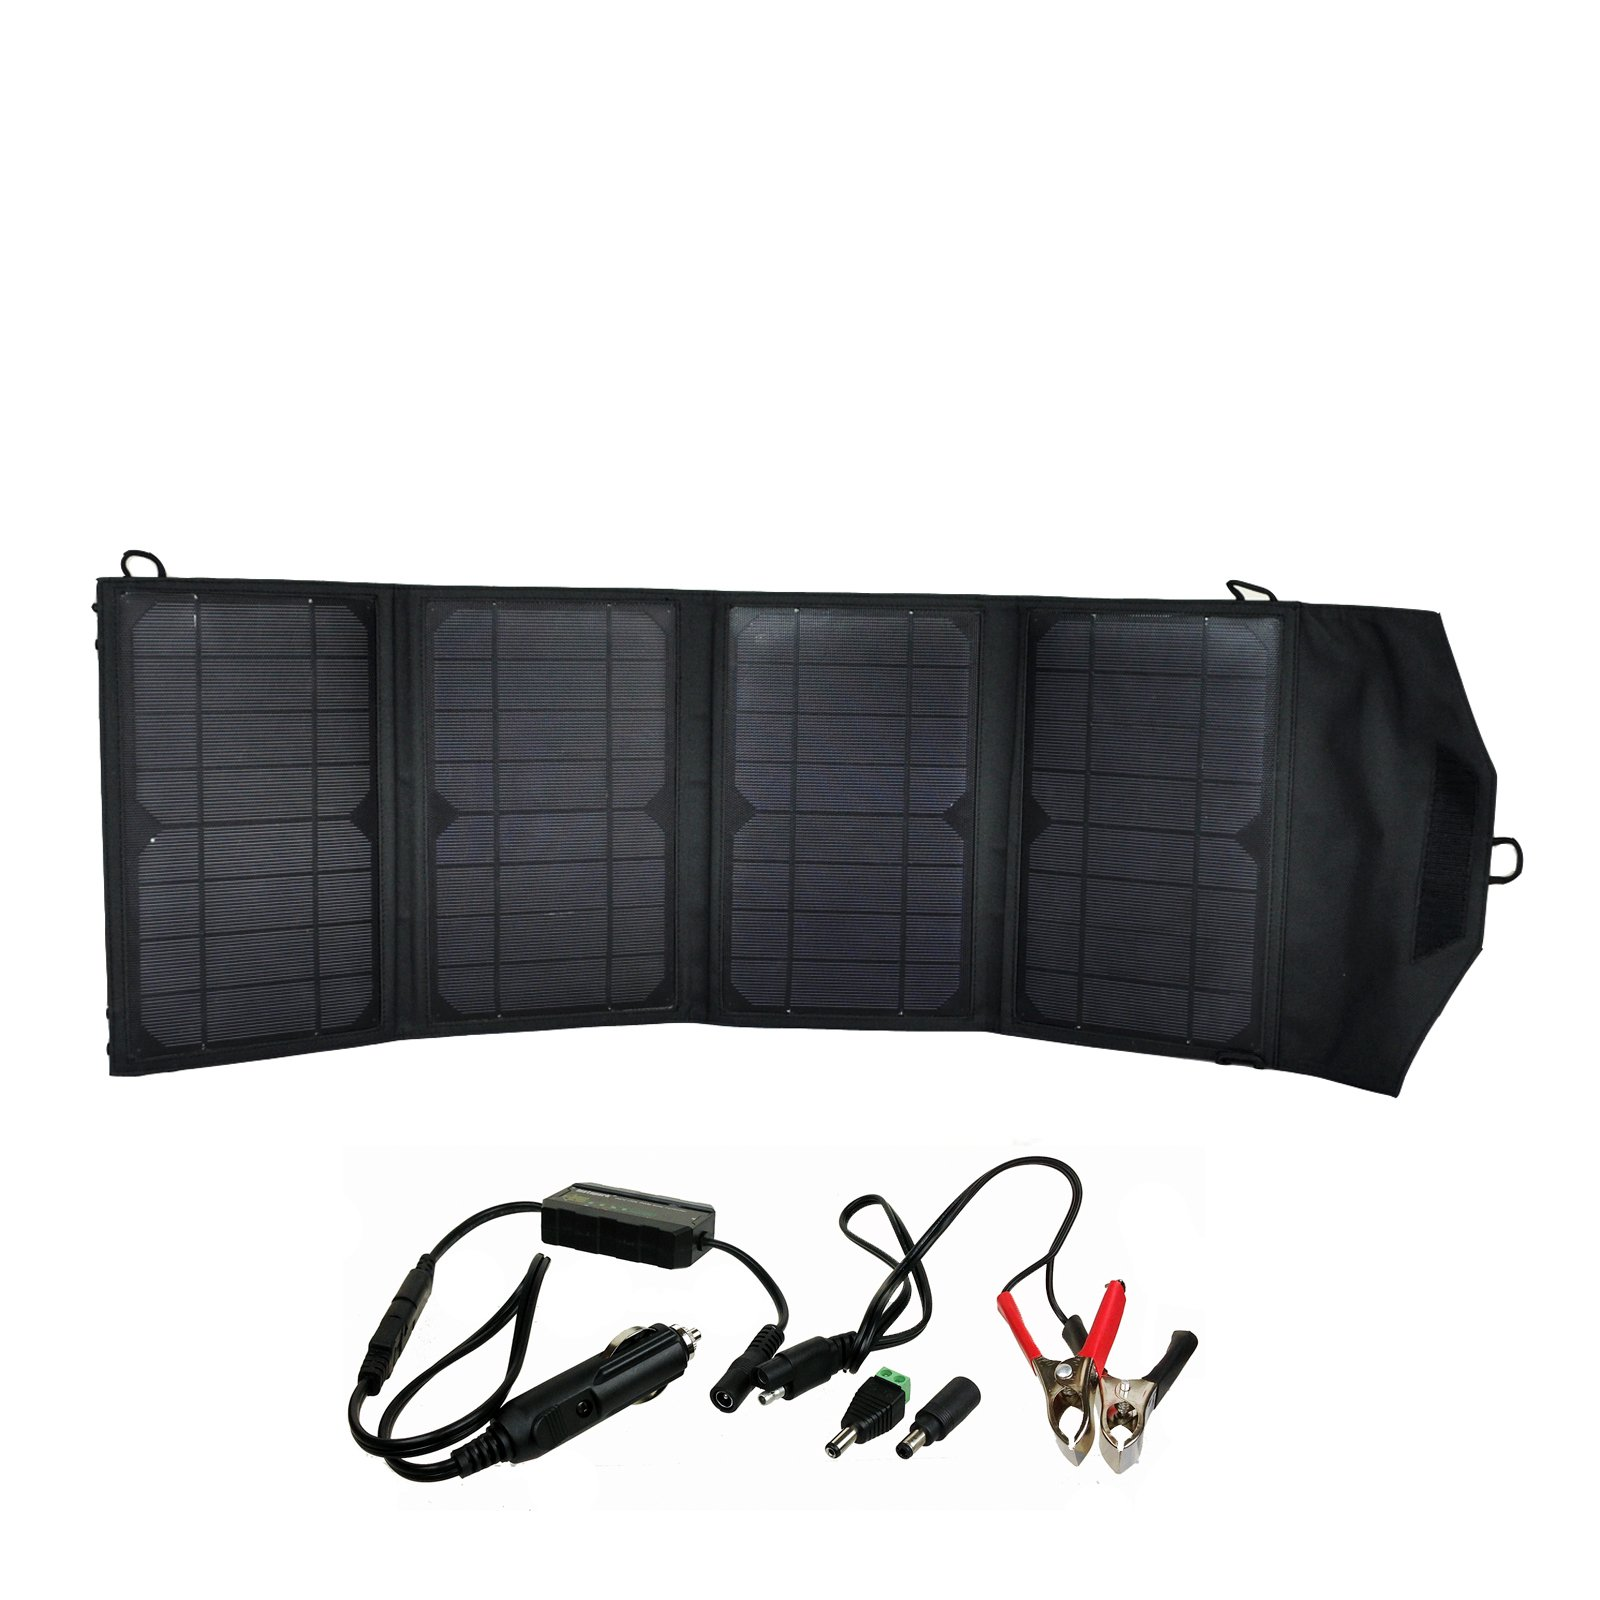 Instapark Mercury27 27-watt Compact Foldable Solar-powered Battery Charger with 12V Output for Instapark Mars20S, Powerpack Series & Wagan Power Dome Series and Dual USB Ports